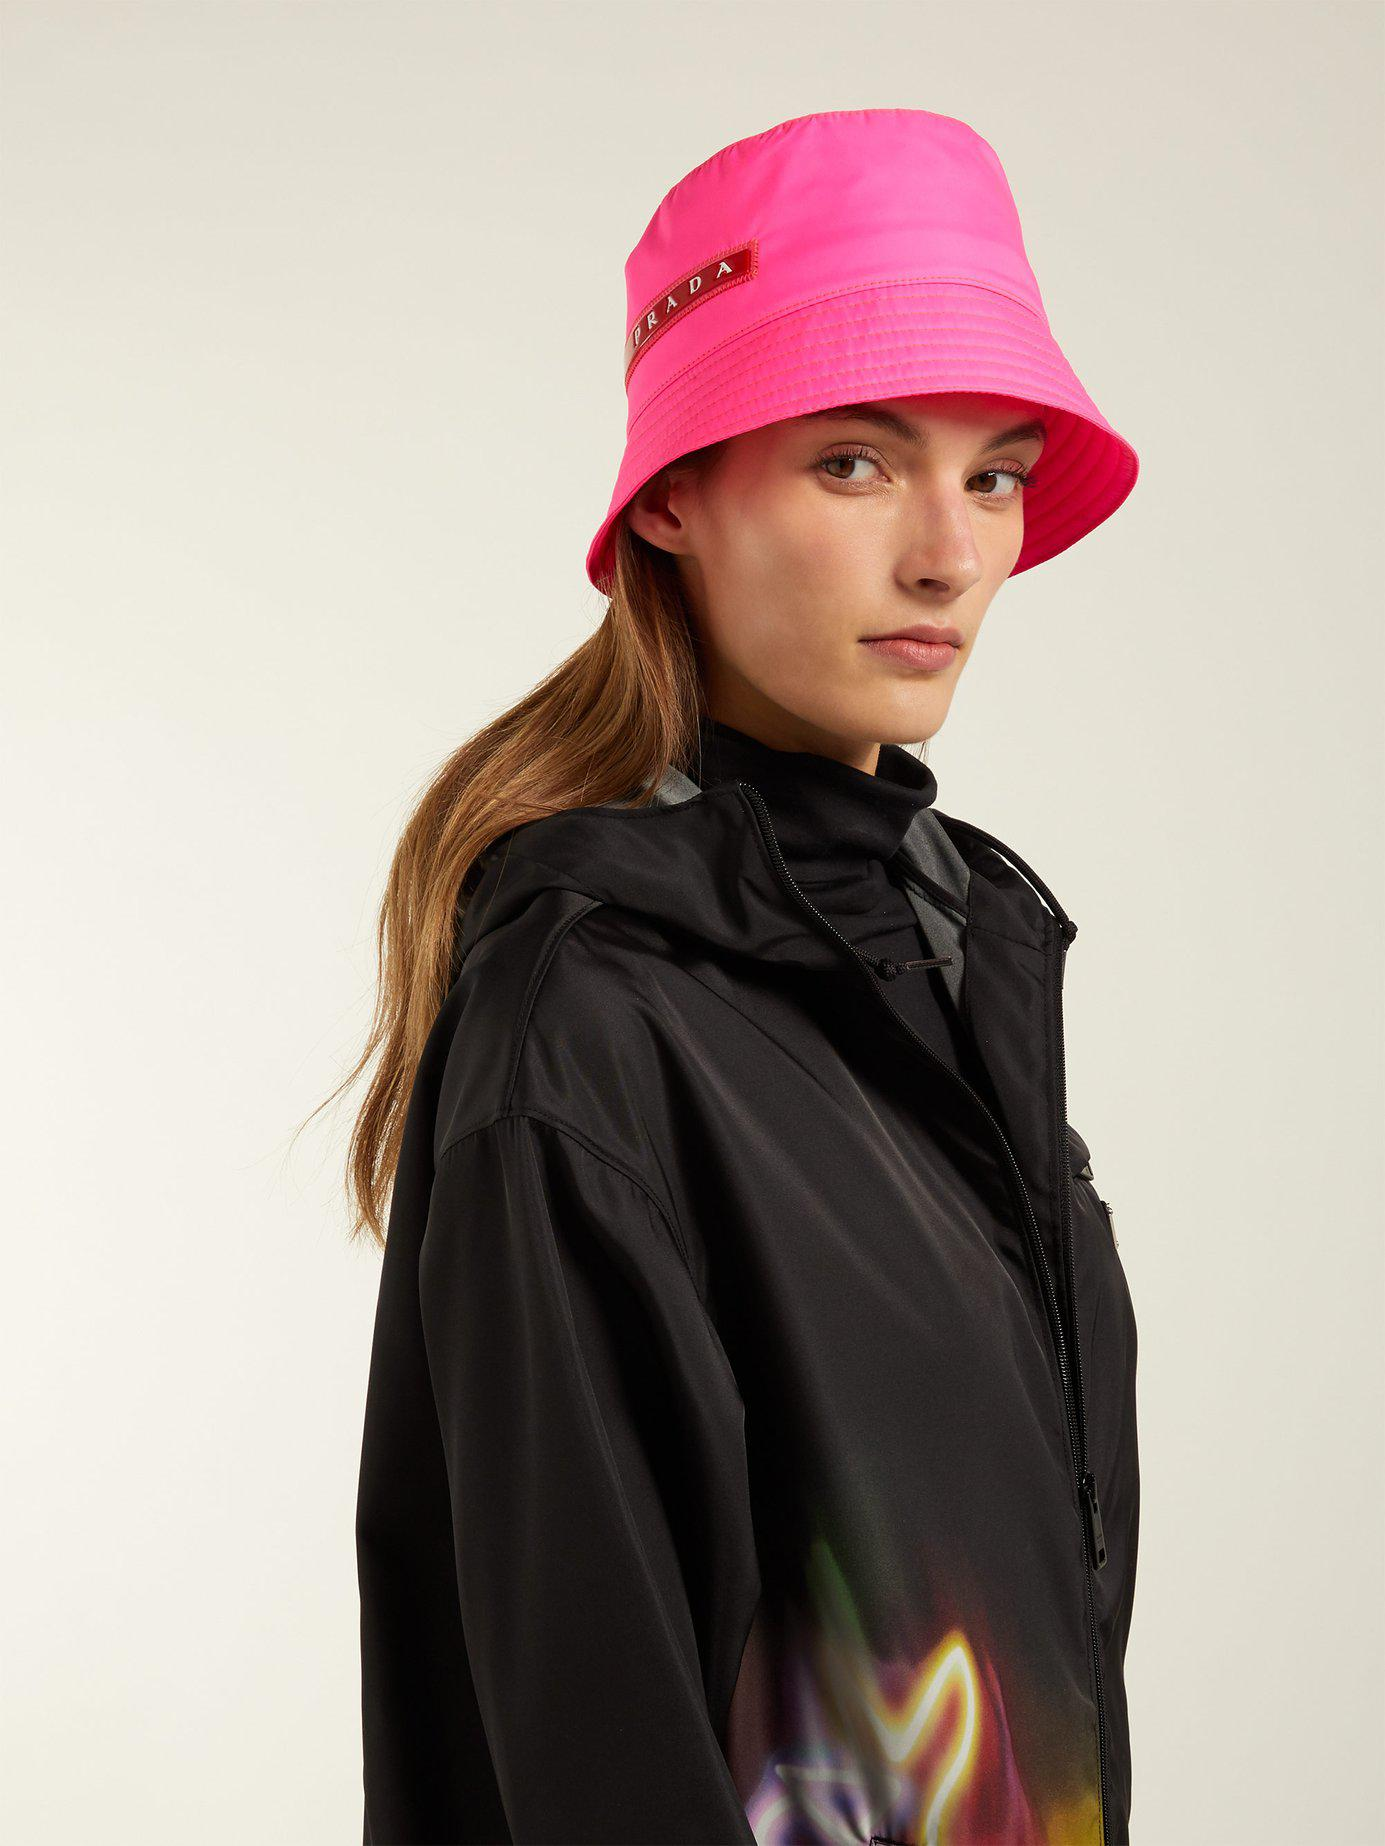 Lyst - Prada Linea Rossa-logo Bucket Hat in Pink 66bb89be0f8